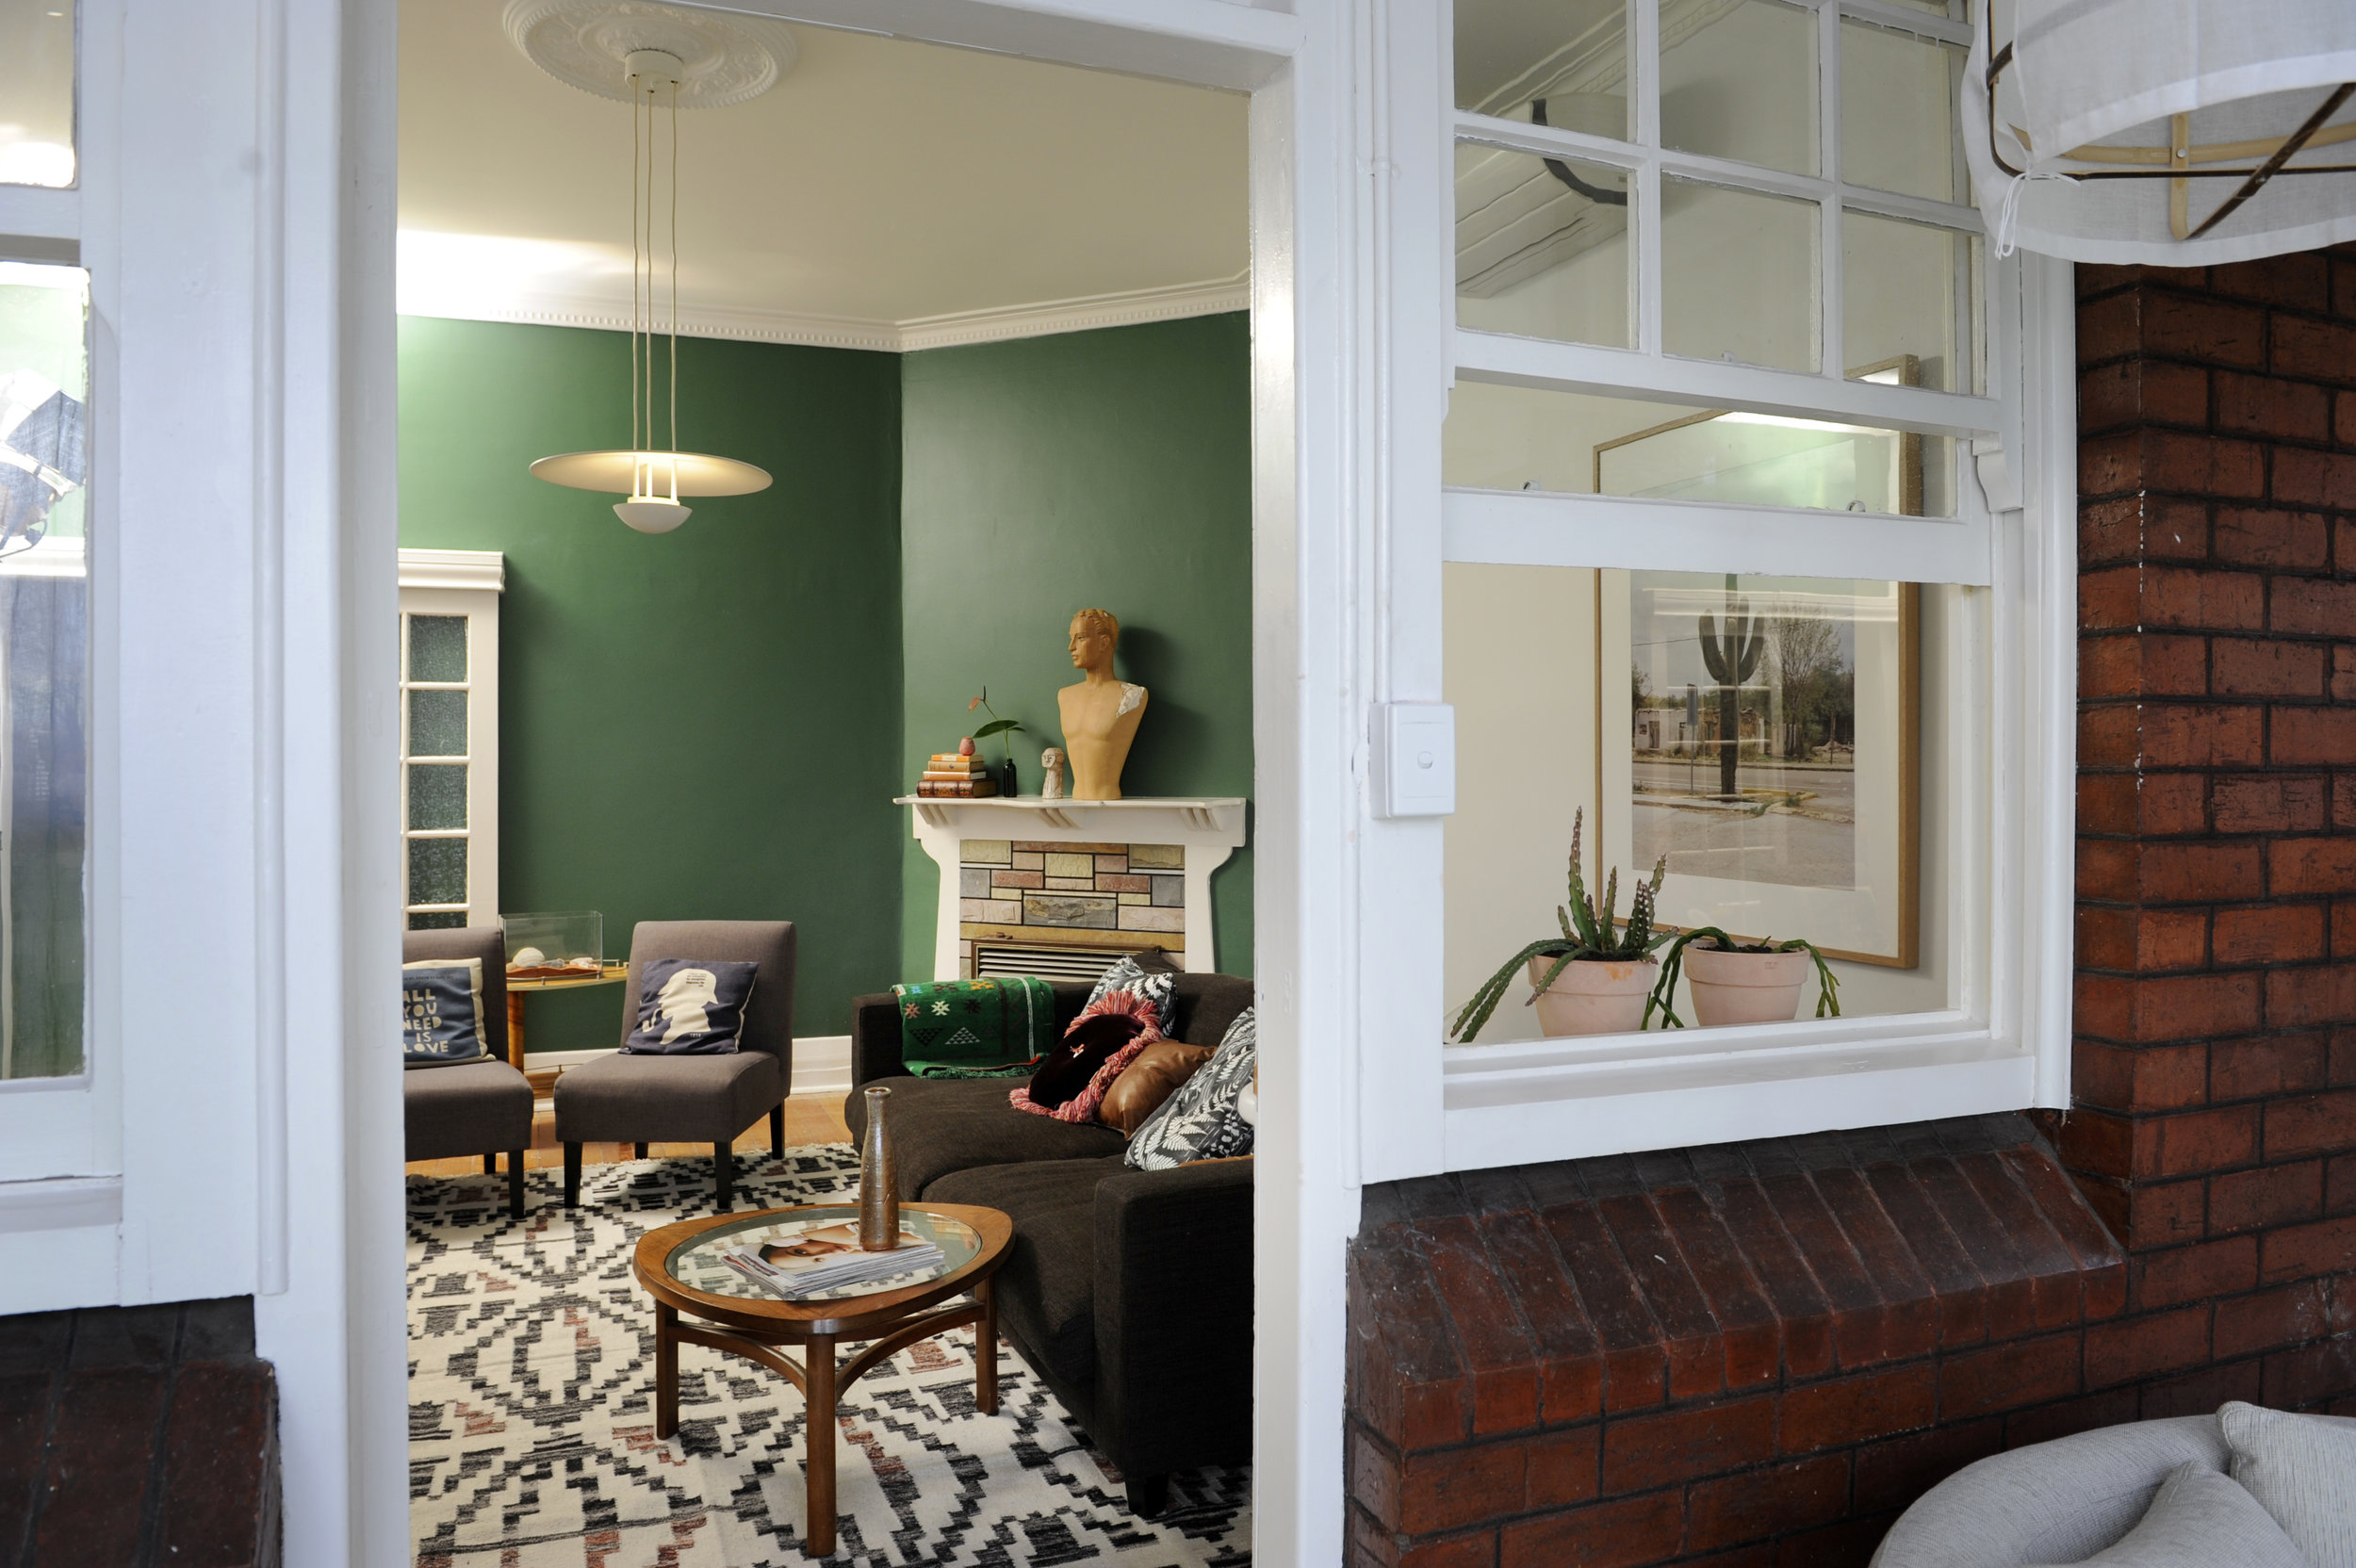 COMPLETED LIVING ROOM, VIEW FROM SUNROOM | Images by Vanessa Hall